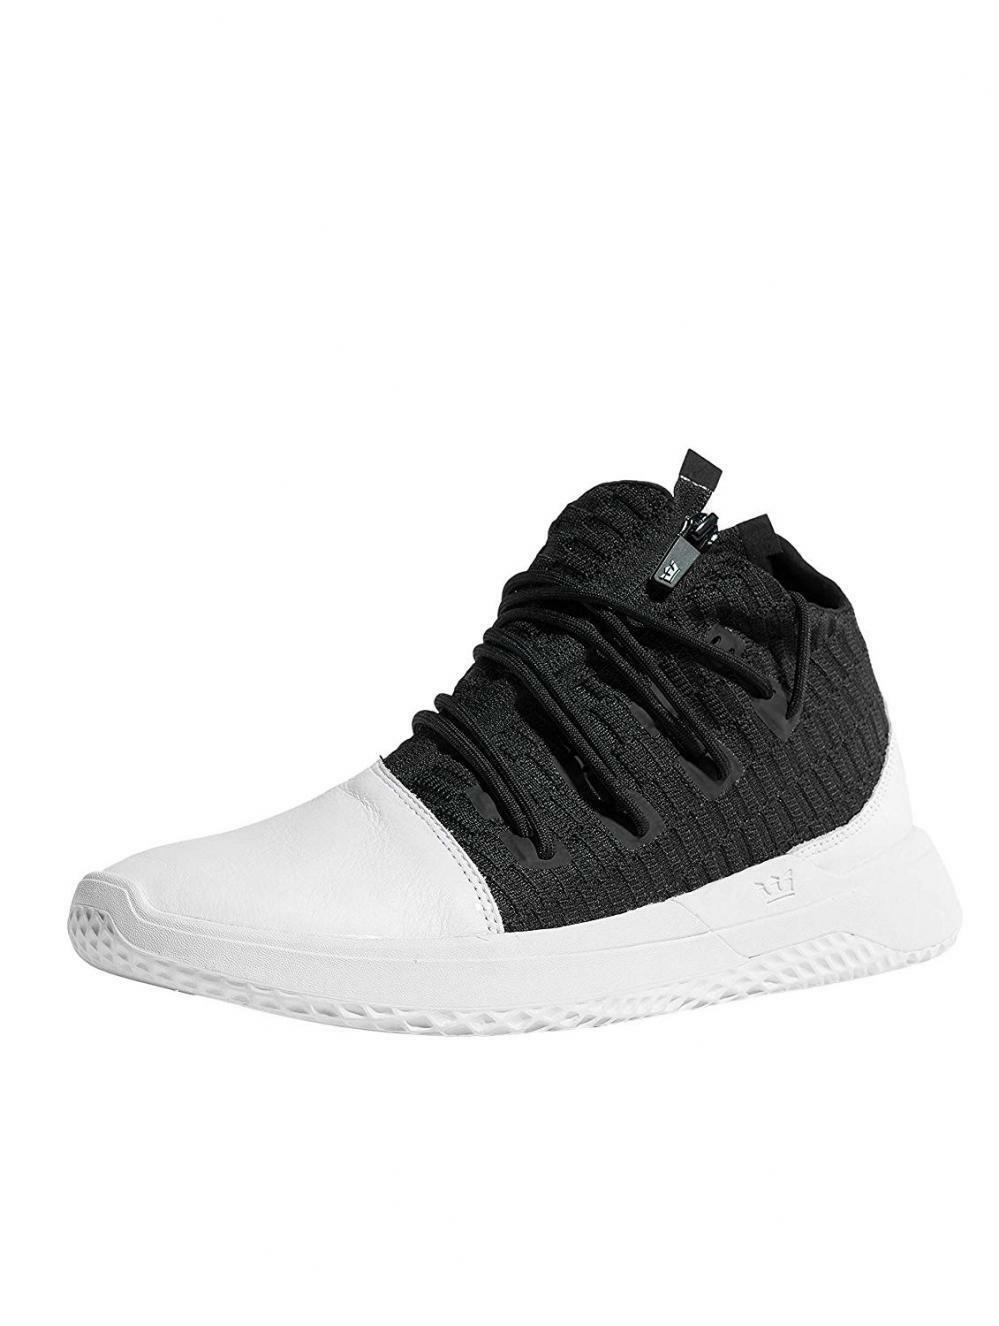 Supra Reason Mens Black Leather Textile Athletic Lace Up Training shoes Walking